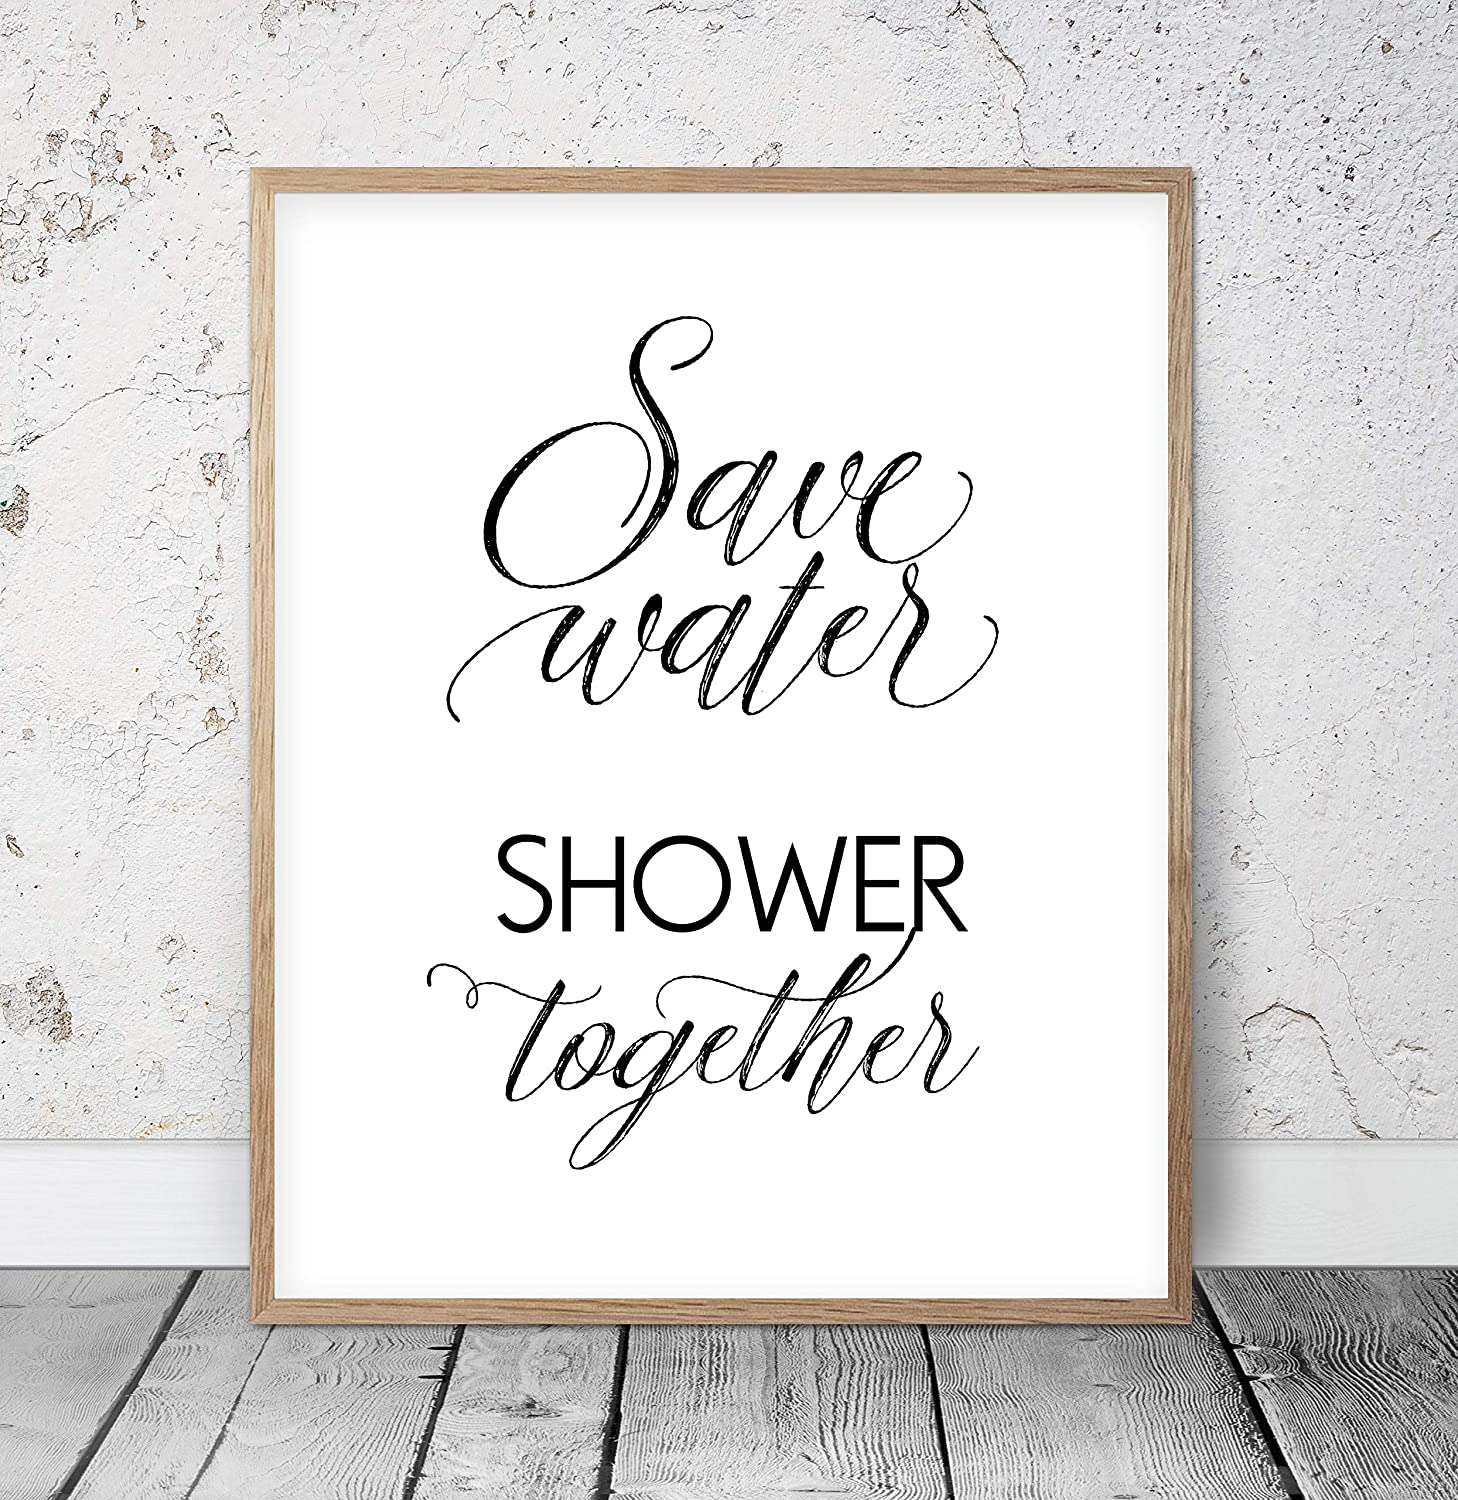 Amazon Com Funny Bathroom Decor Save Water Shower Together Bathroom Signs Bath Room Wall Art Shower Wall Decor Couples Gift Funny Bath Signs Wood Pallet Design Wall Art Sign Plaque With Frame Wooden